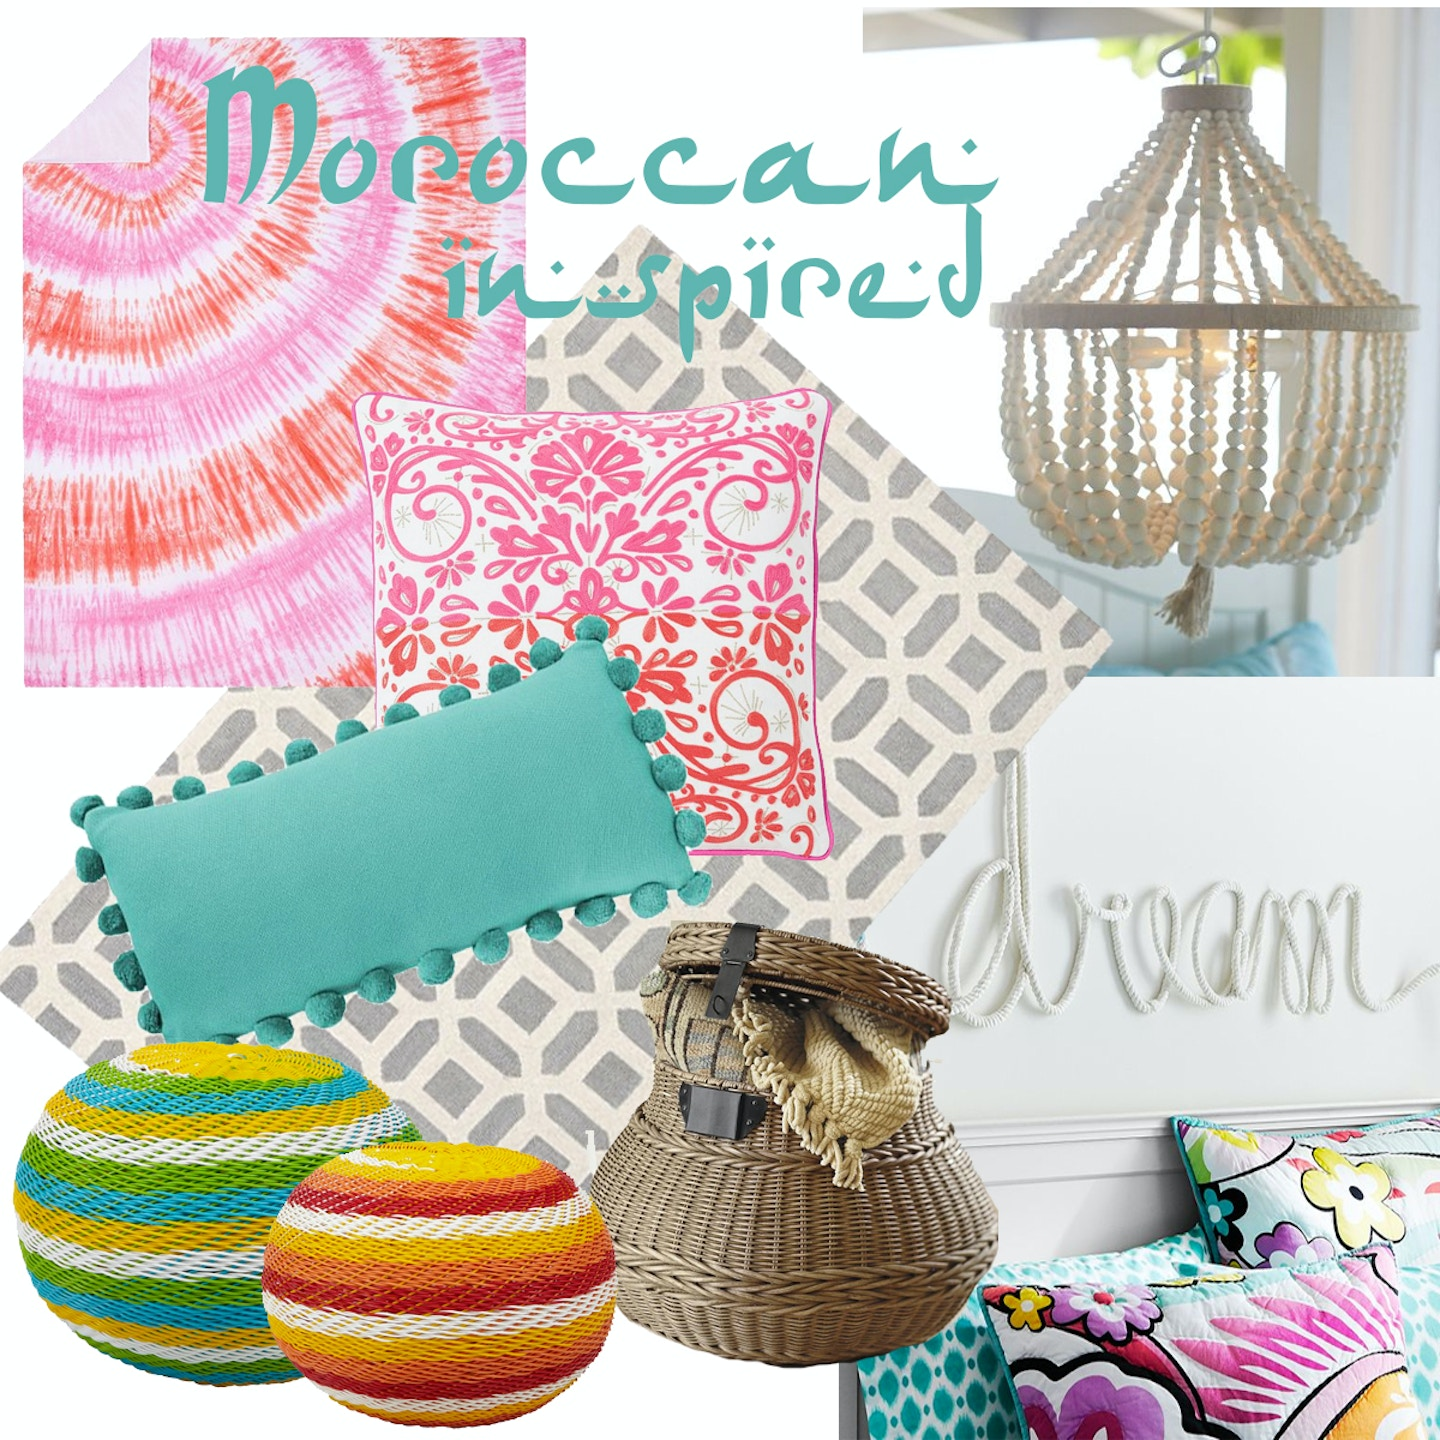 How to decorate your dorm room with Moroccan flair!